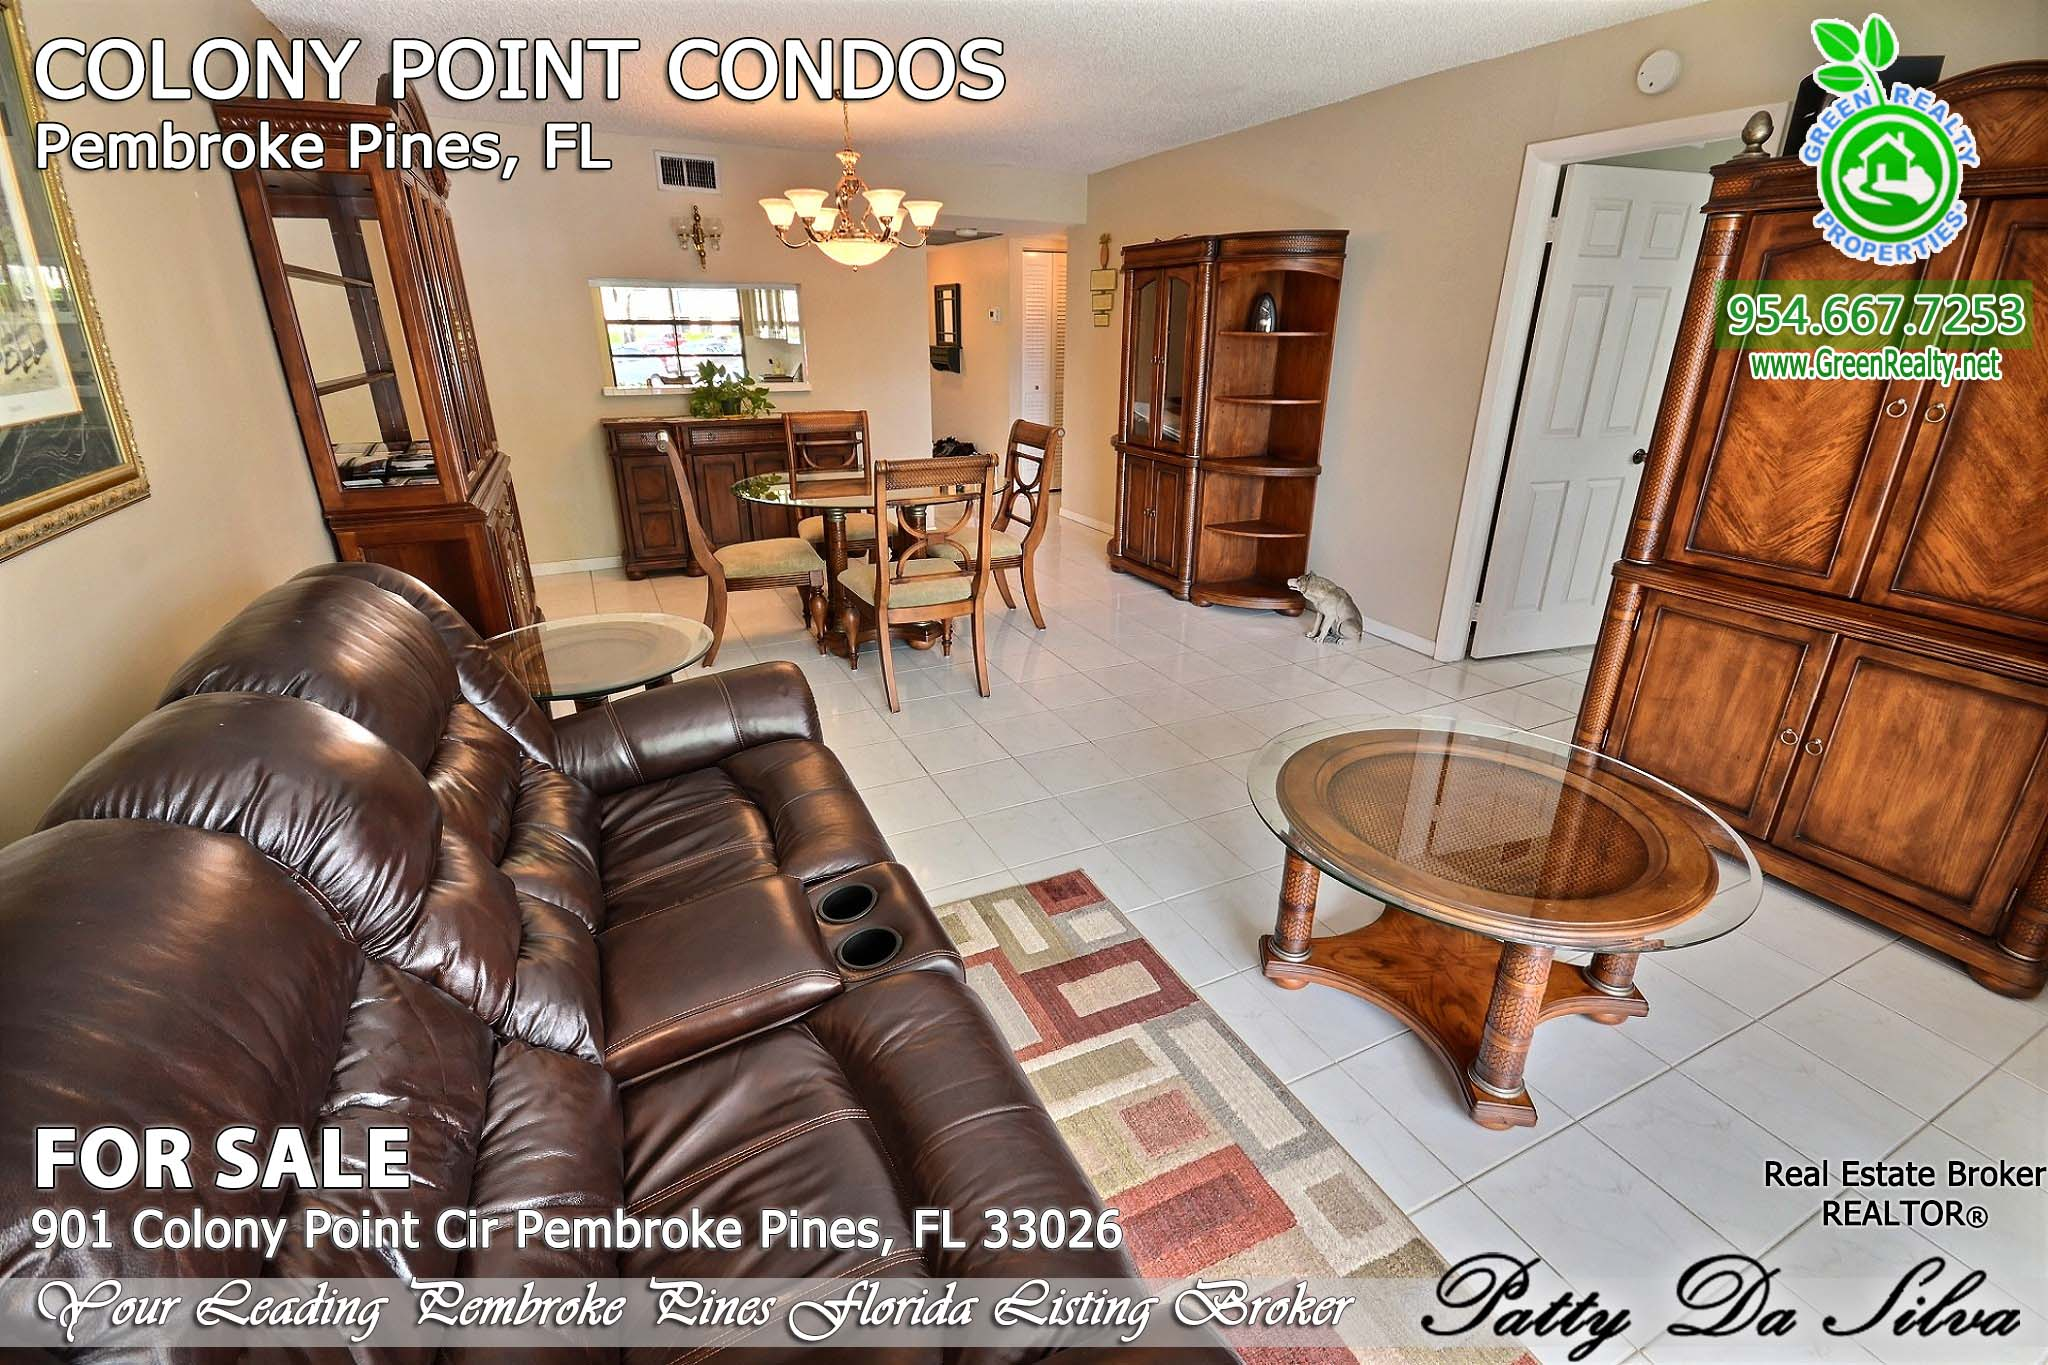 901 Colony Point Cir, Unit 112 - Pembroke Pines Homes For Sale (10)